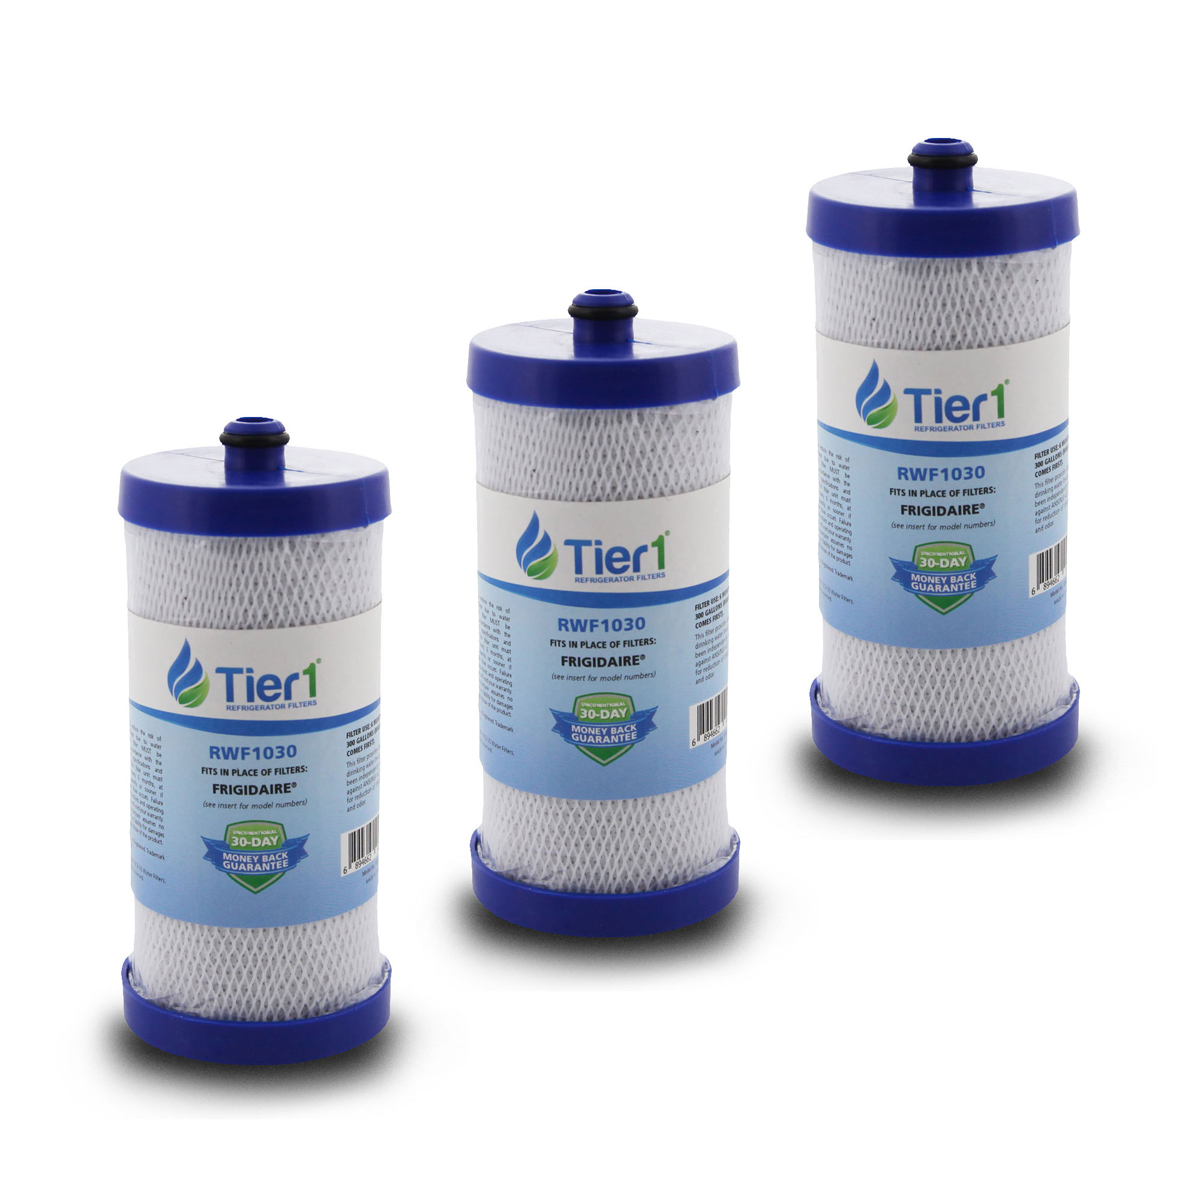 WFCB / WF1CB Frigidaire Comparable Water Filter Replacement By Tier1 (3 Pack) TIER1_RWF1030_3_PACK